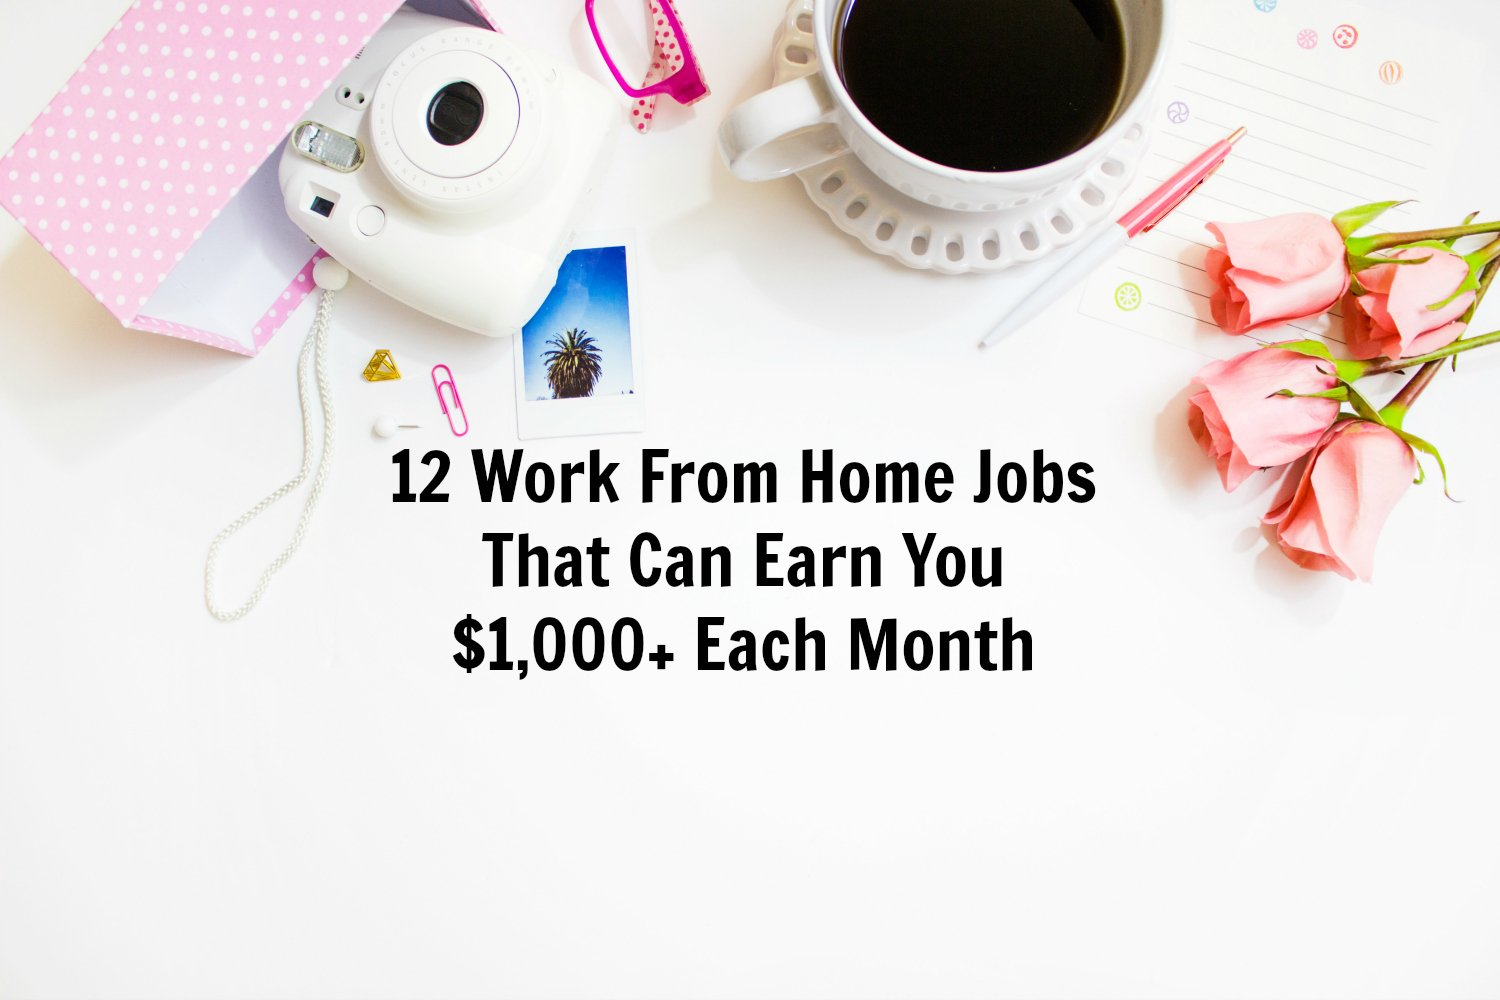 How To Earn Money From Home - 12 Work From Home Jobs